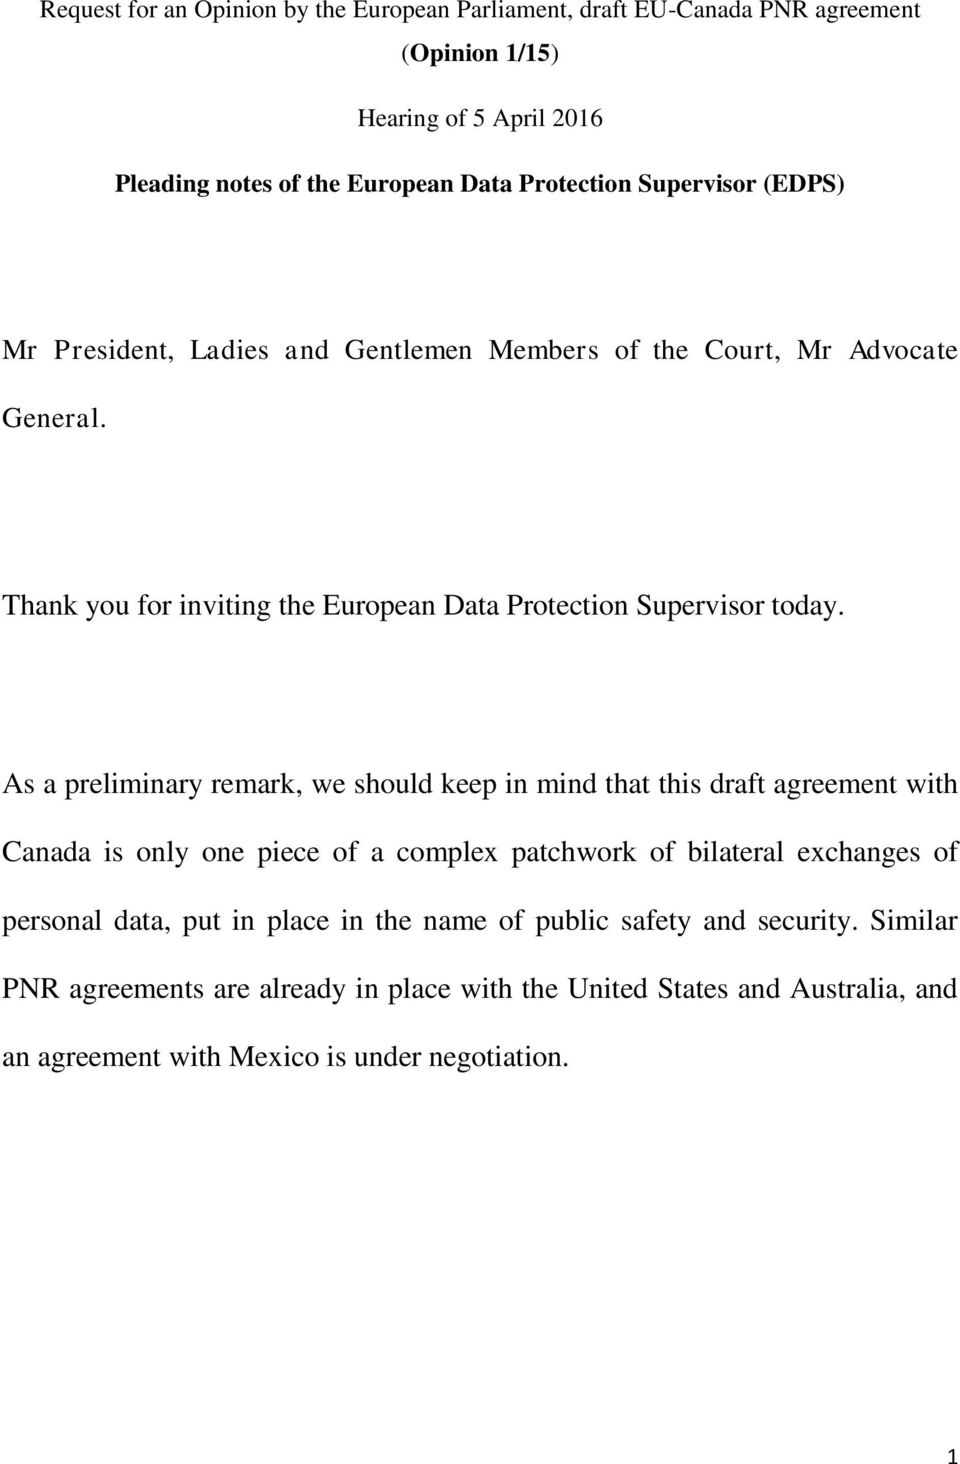 As a preliminary remark, we should keep in mind that this draft agreement with Canada is only one piece of a complex patchwork of bilateral exchanges of personal data, put